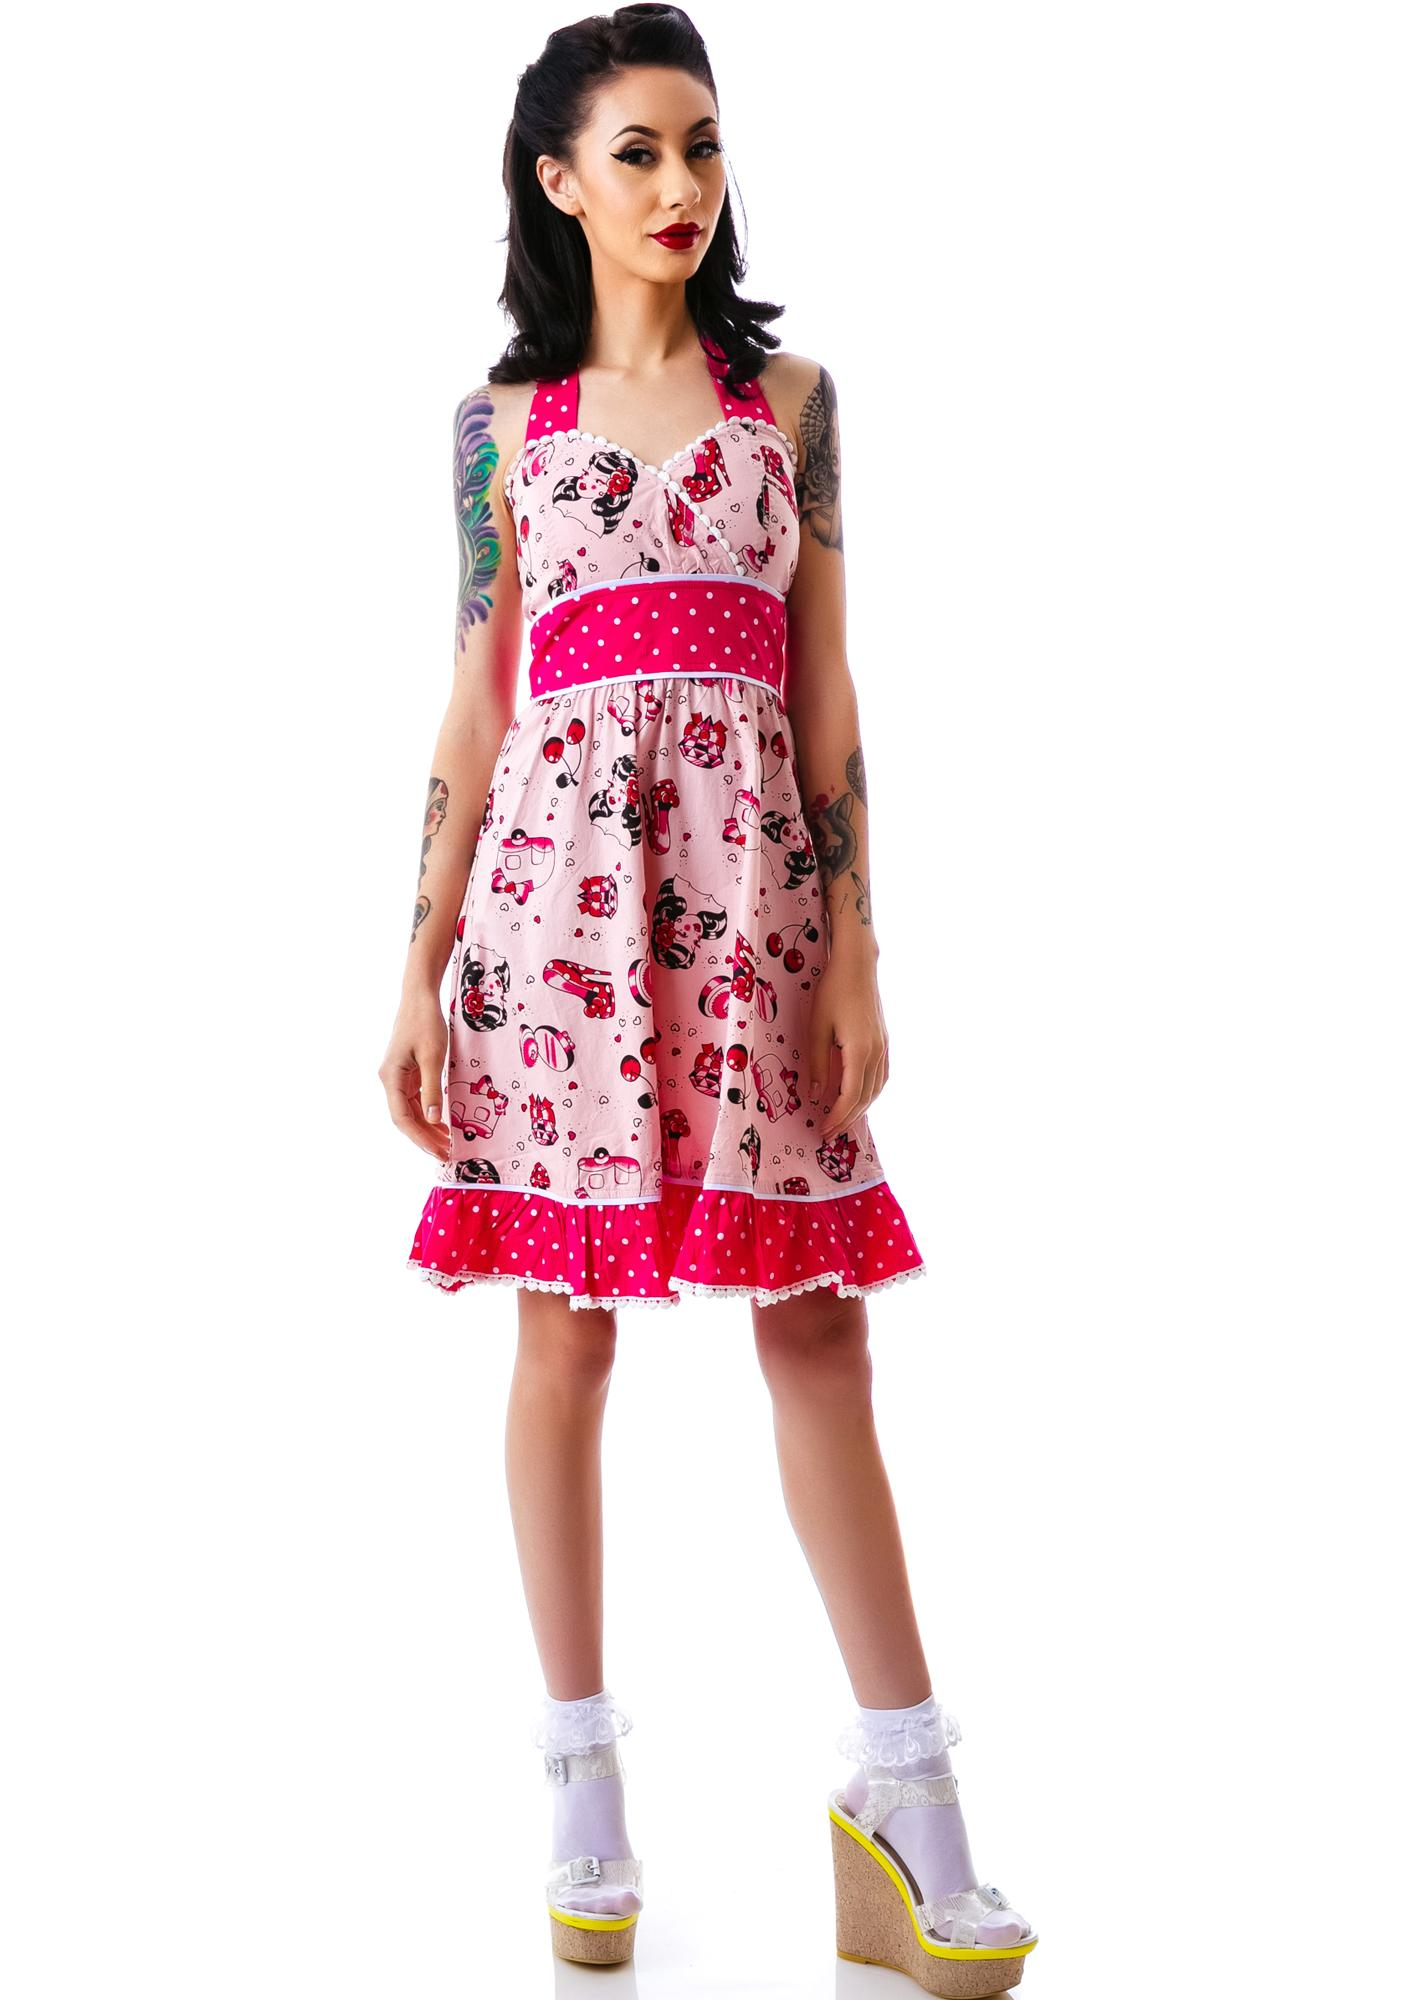 Sourpuss Clothing Ada All Dolled Up Dress